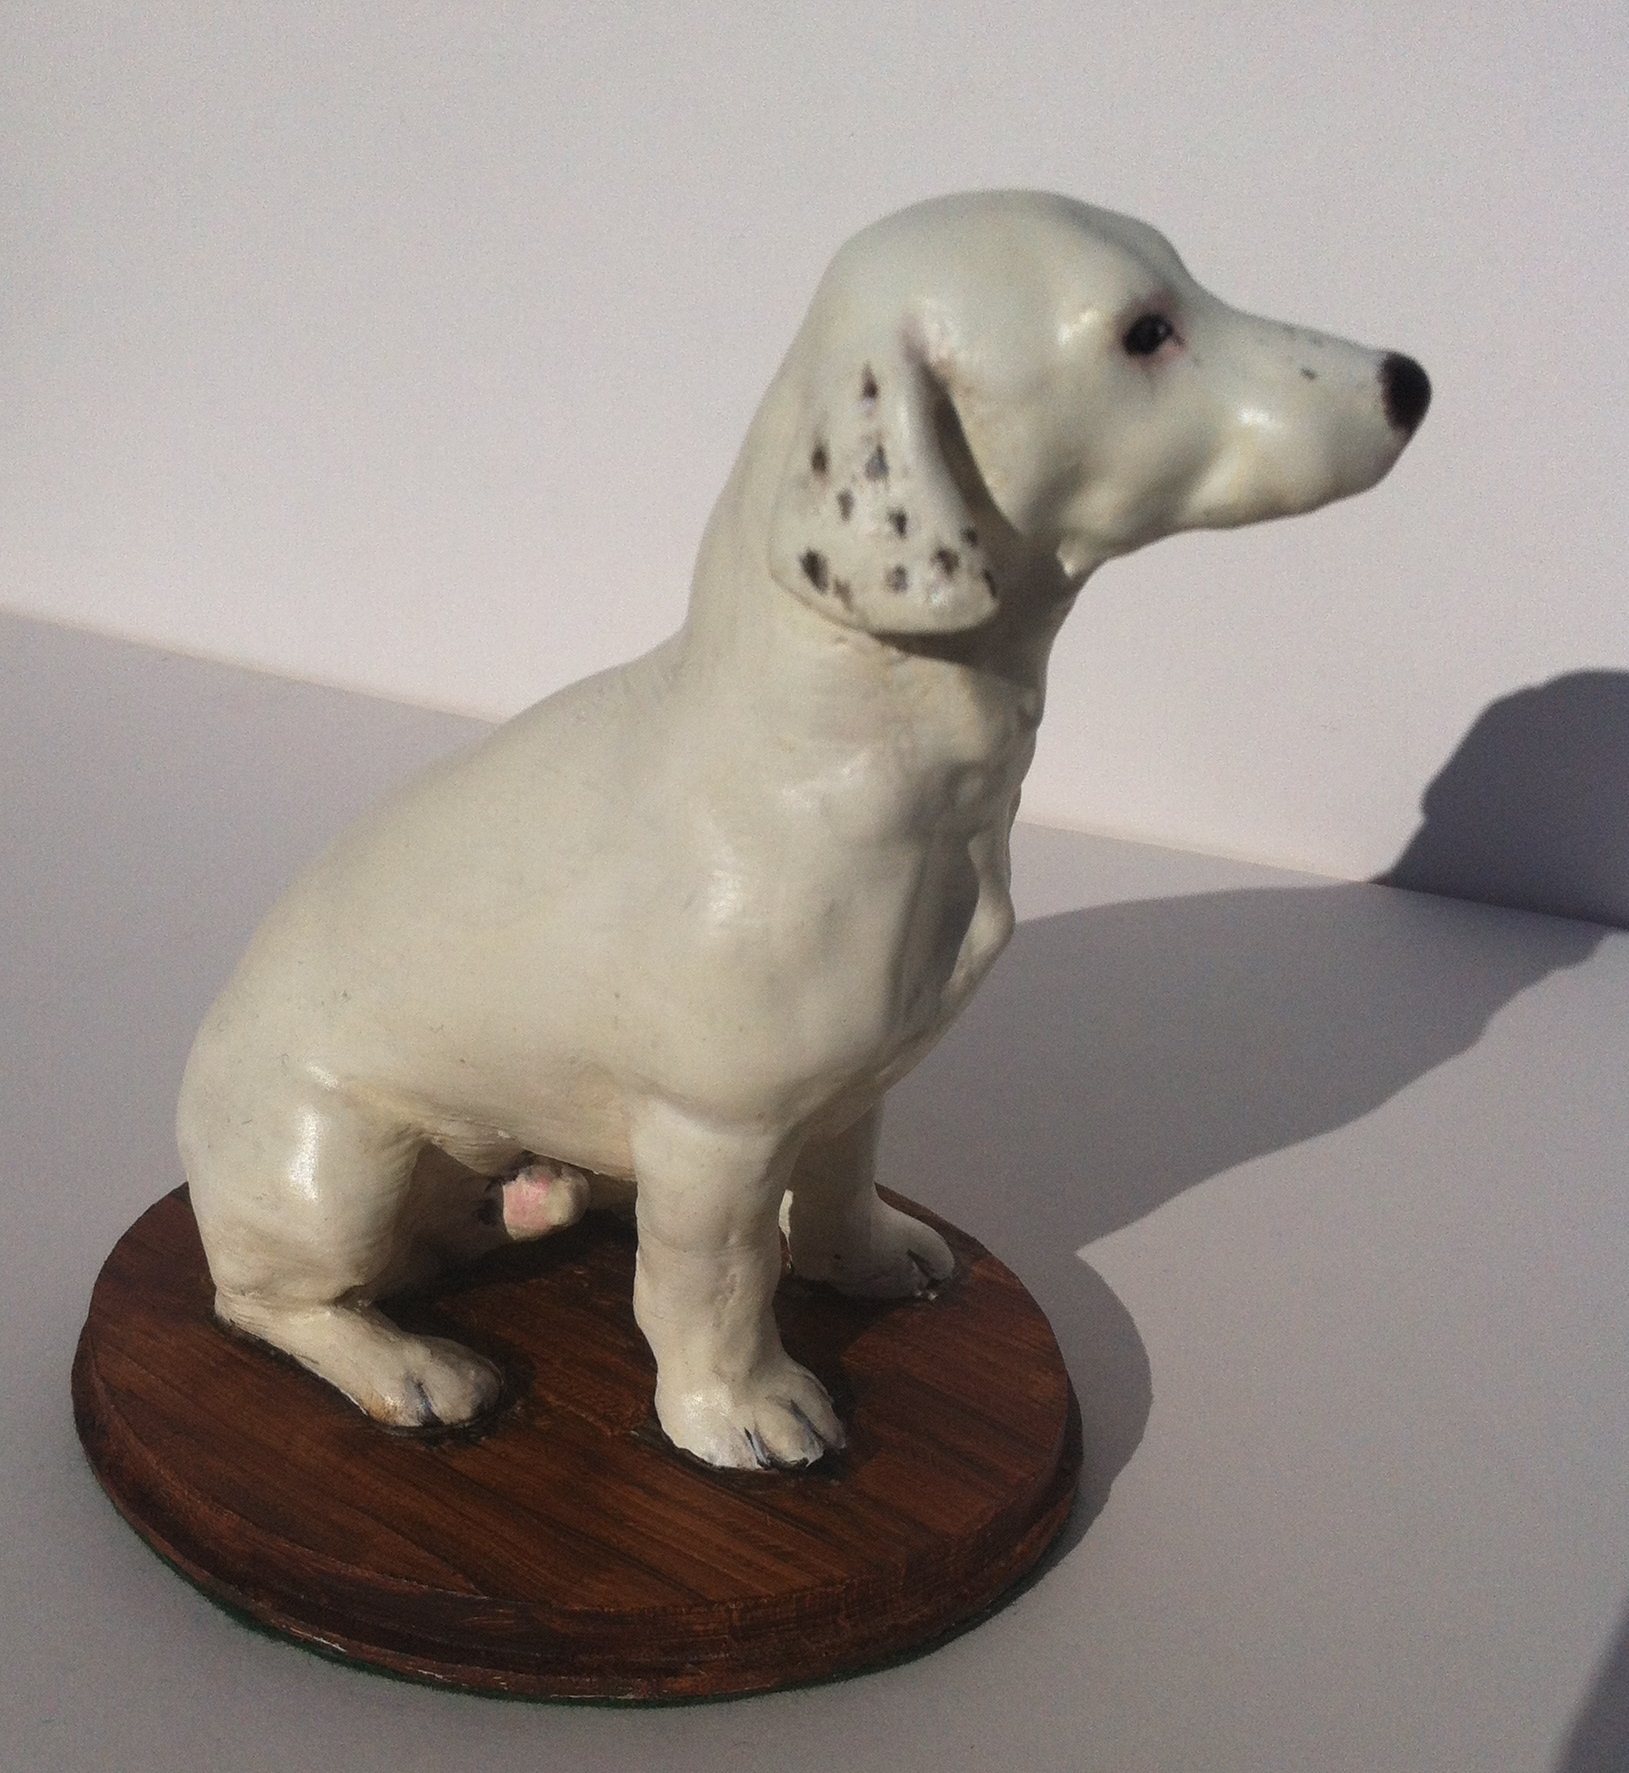 3D Printed Dog Sculpture Pip